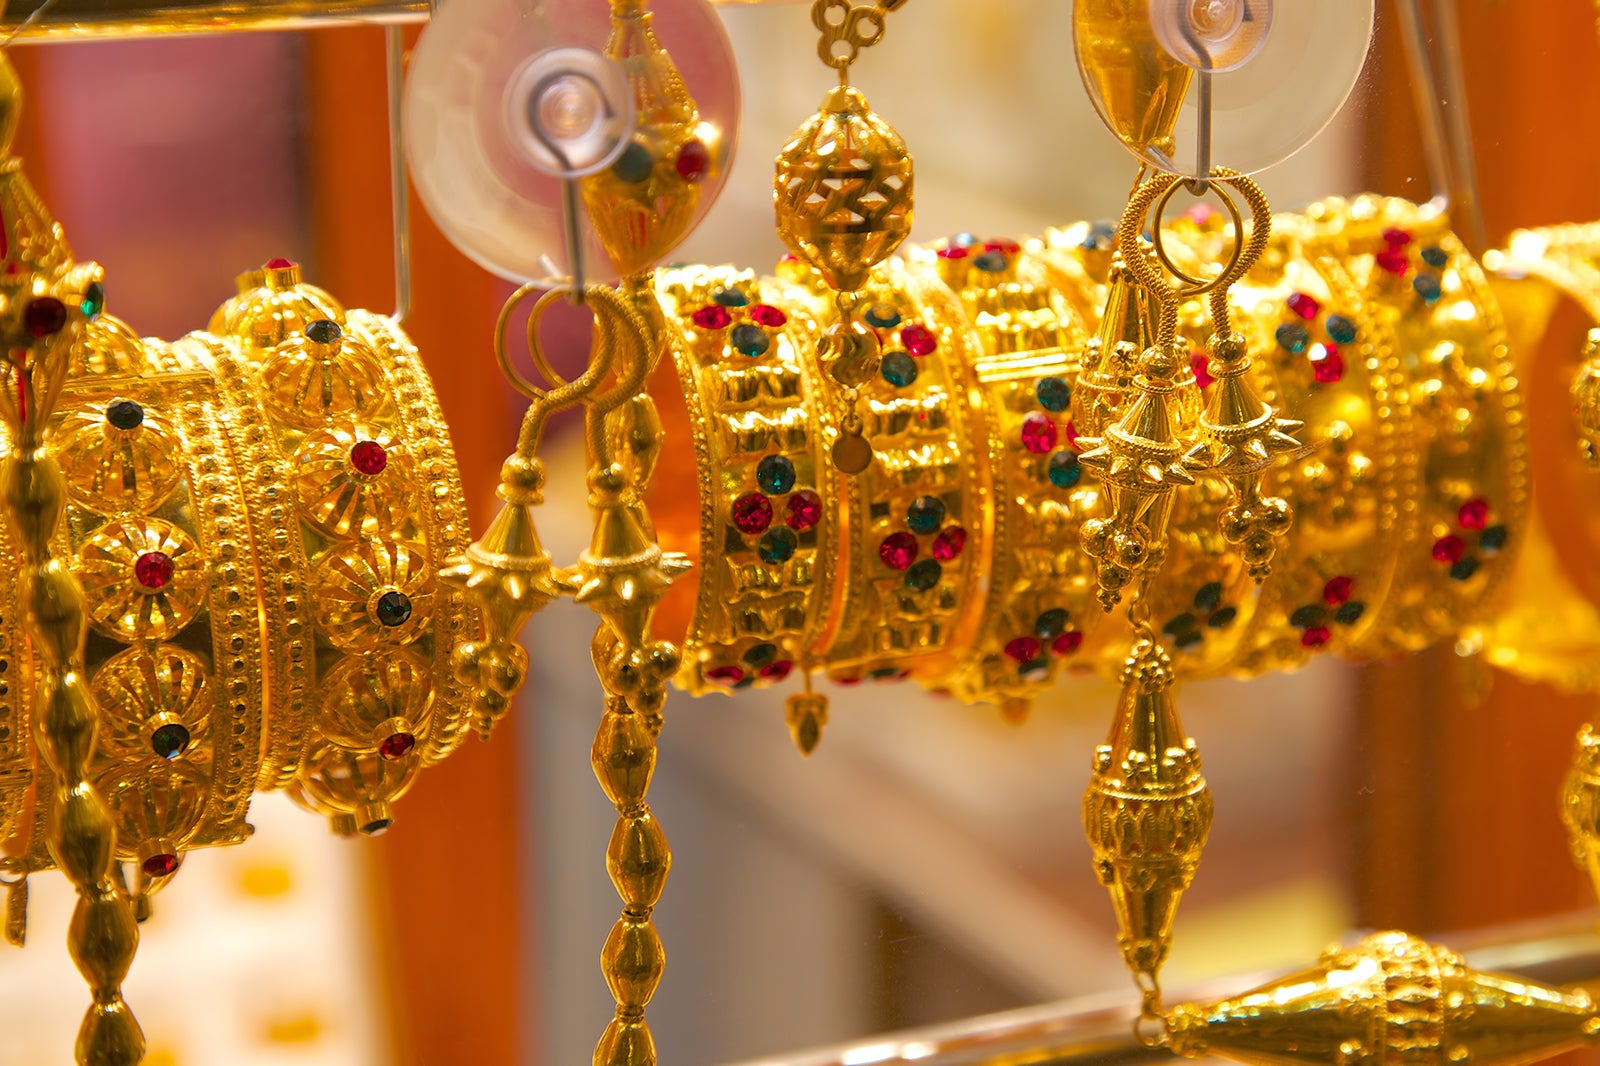 10 Interesting Souvenirs to Buy in Qatar - What to Buy for Your Friends and Where to Shop